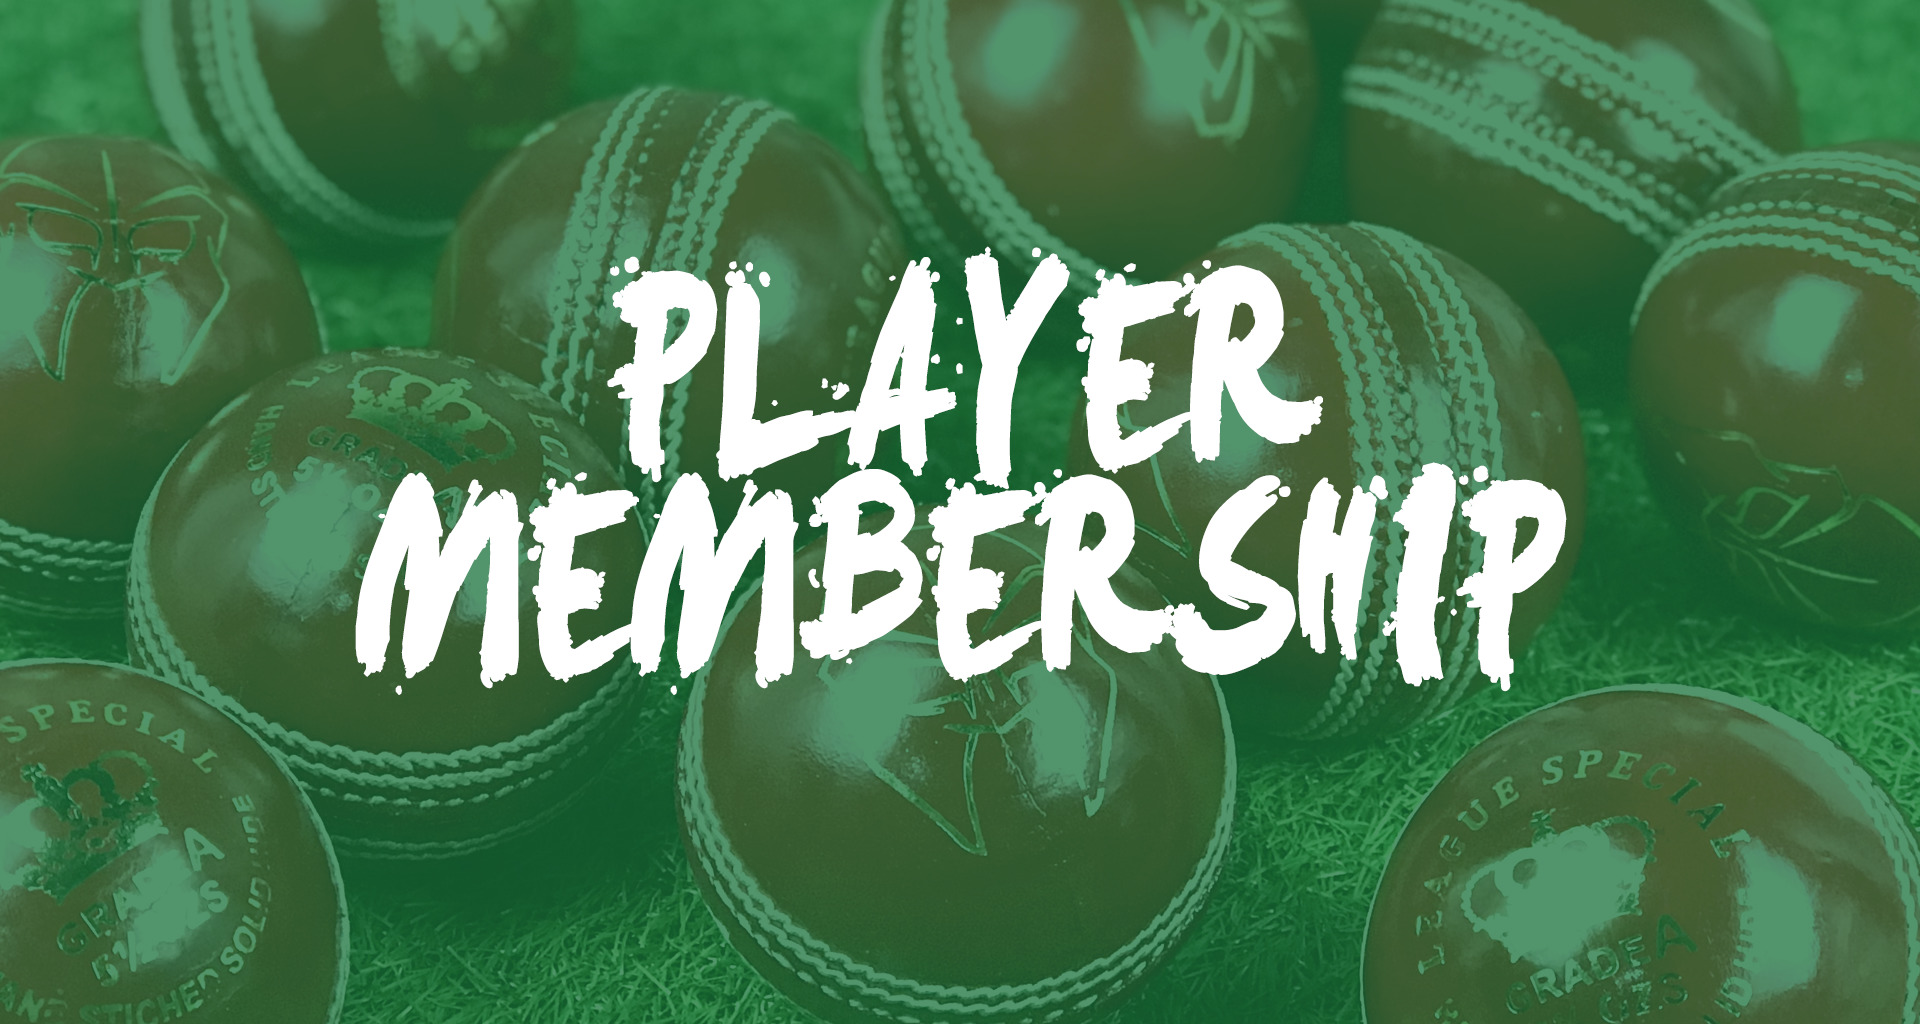 https://wilmslowcricketclub.com/wp-content/uploads/2020/03/Player-Membership.jpg